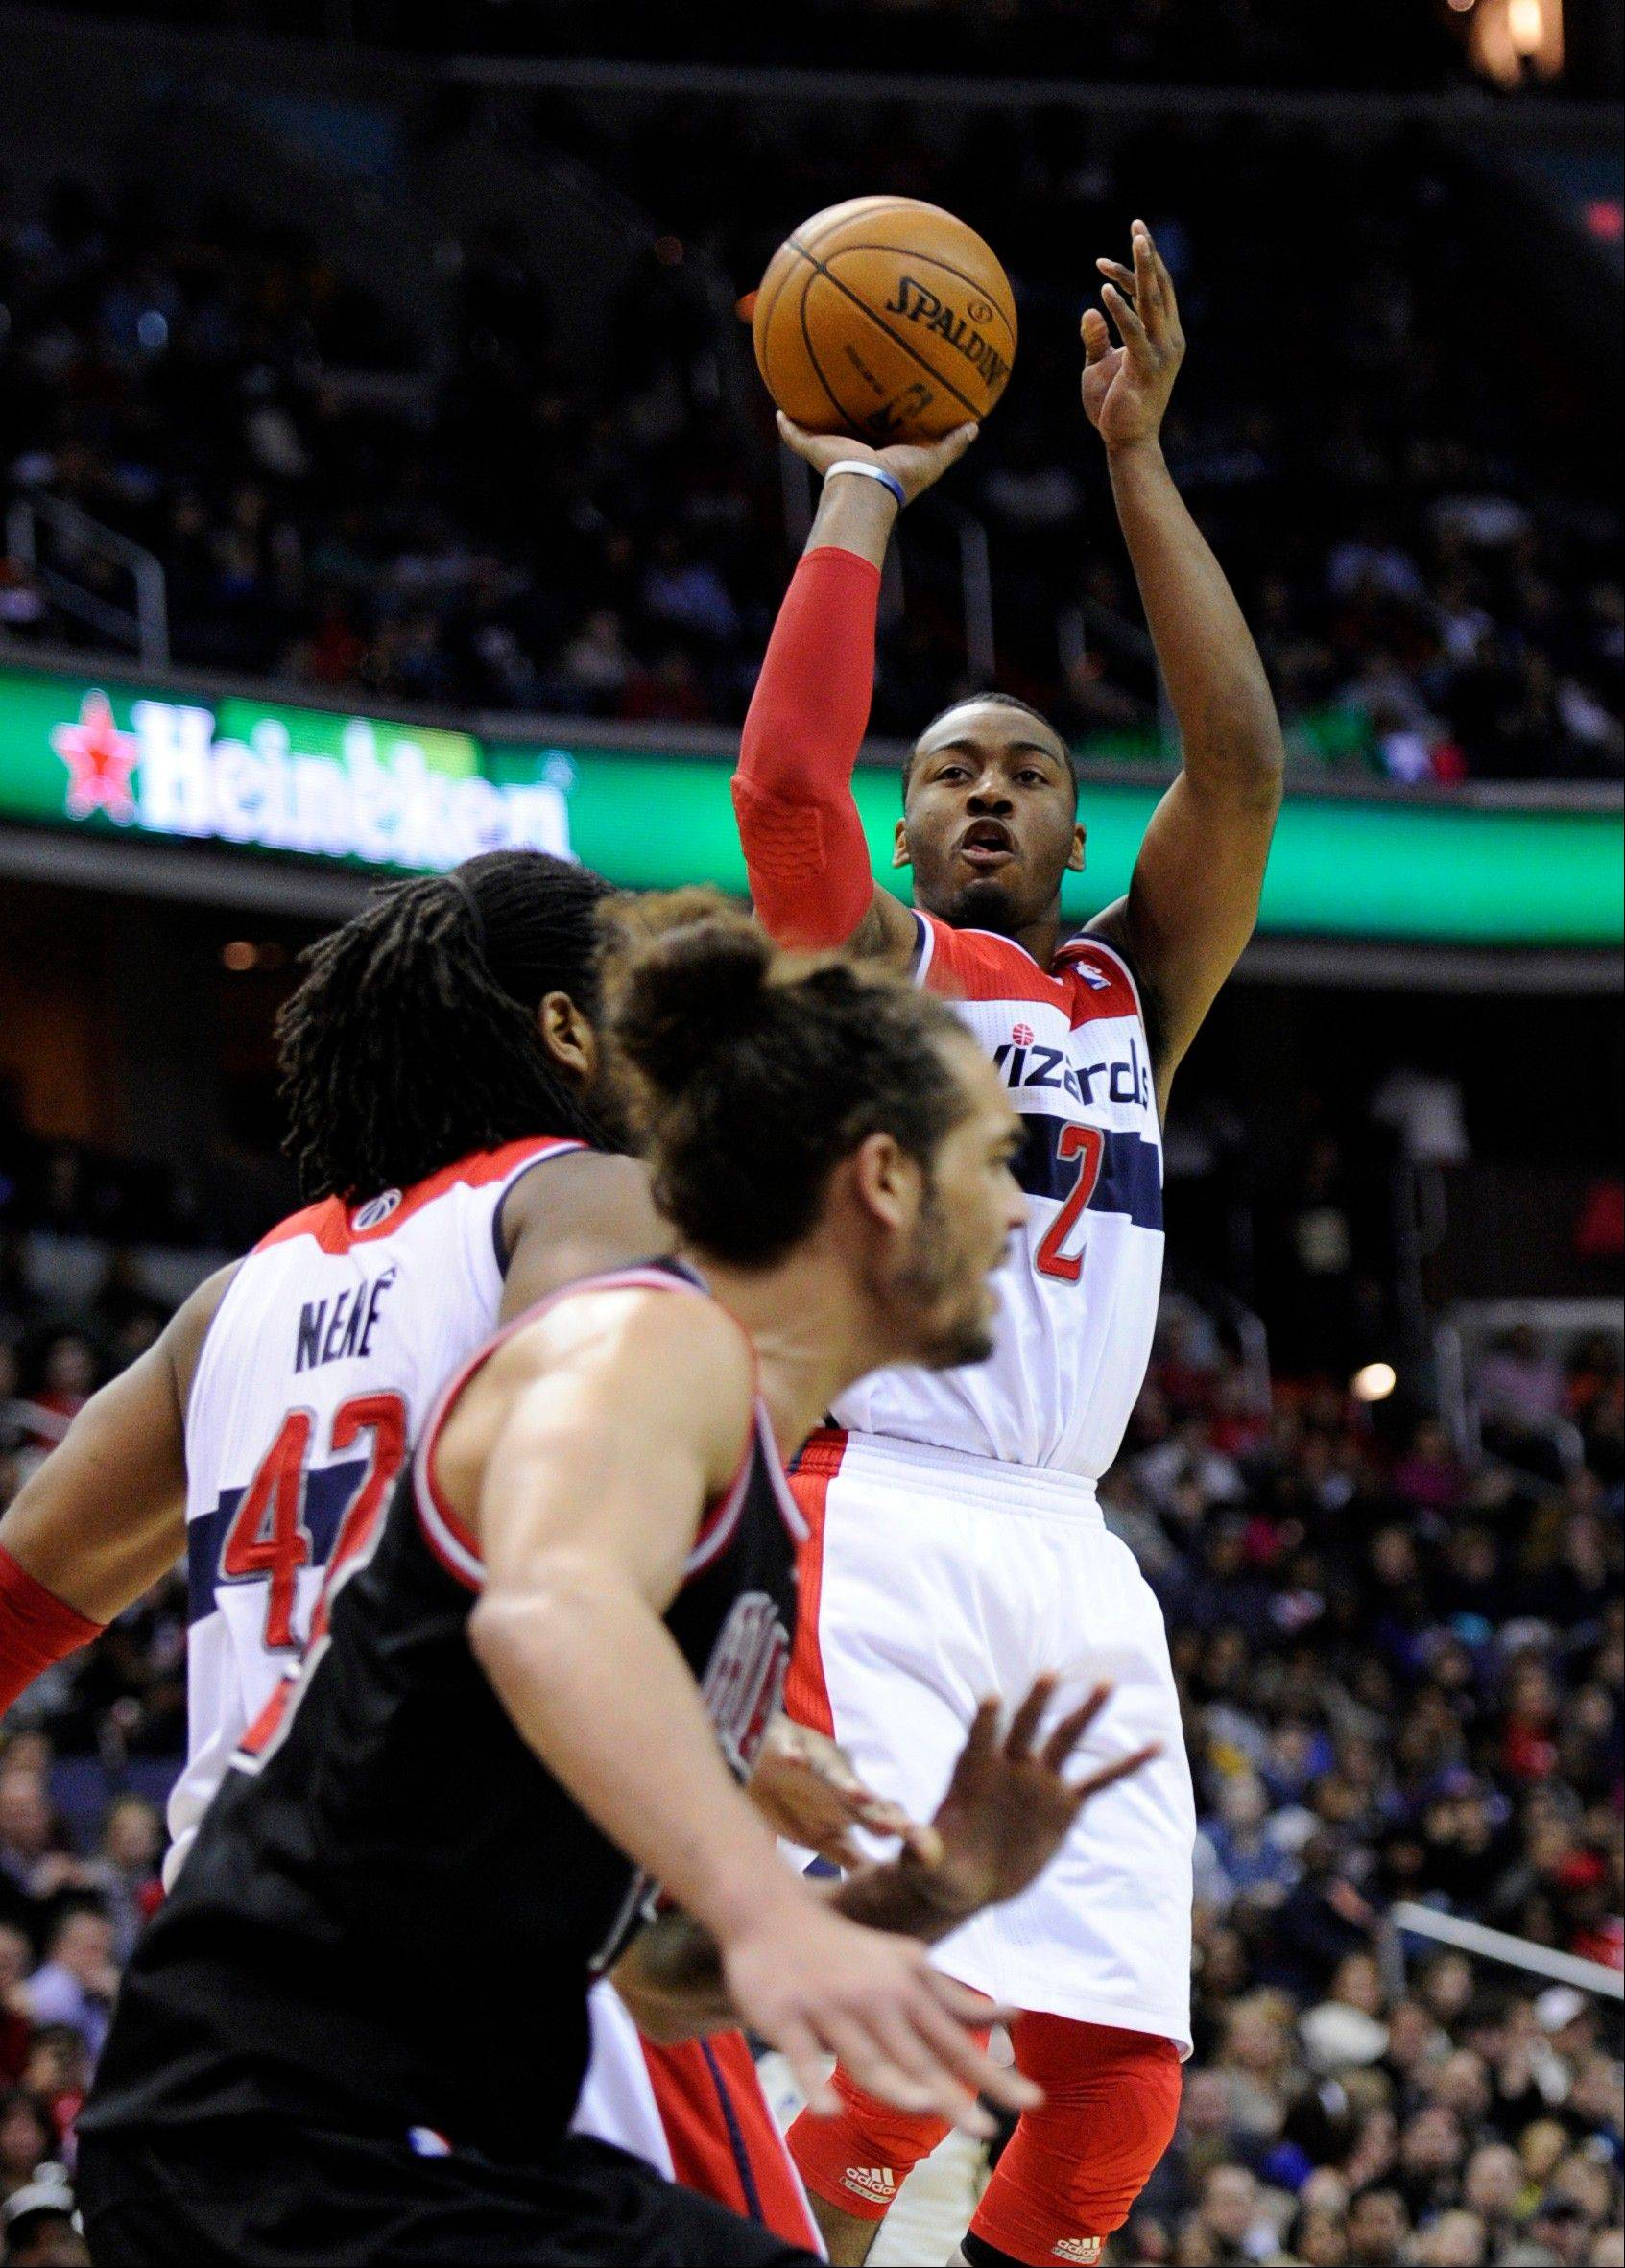 Wizards guard John Wall (2) puts up a shot against Bulls center Joakim Noah, front, during the second half of an NBA basketball game, Saturday, Jan. 26, 2013, in Washington. The Wizards won 86-73.